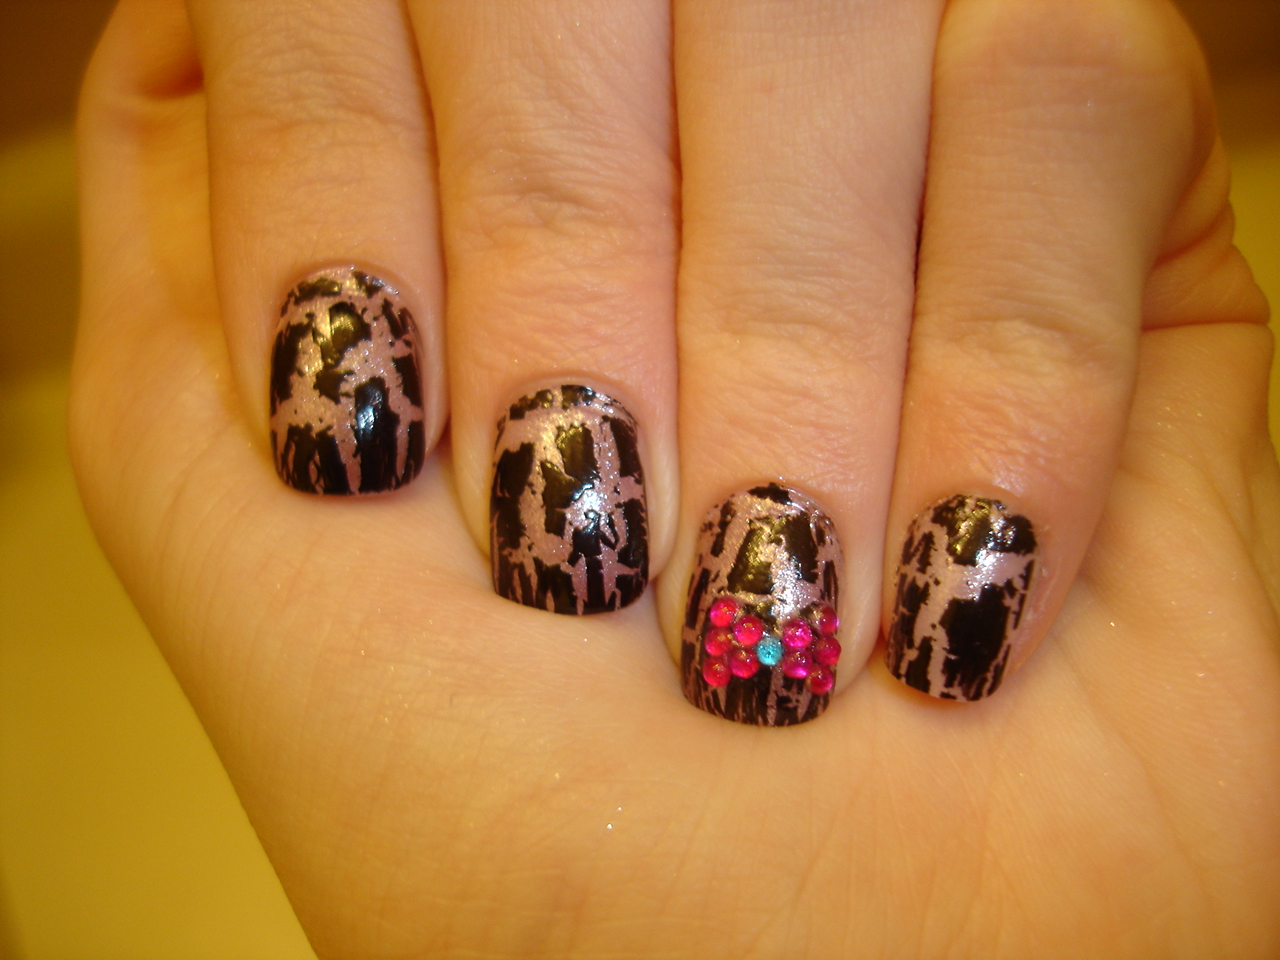 15 Nail Designs With Bows And Rhinestones Images